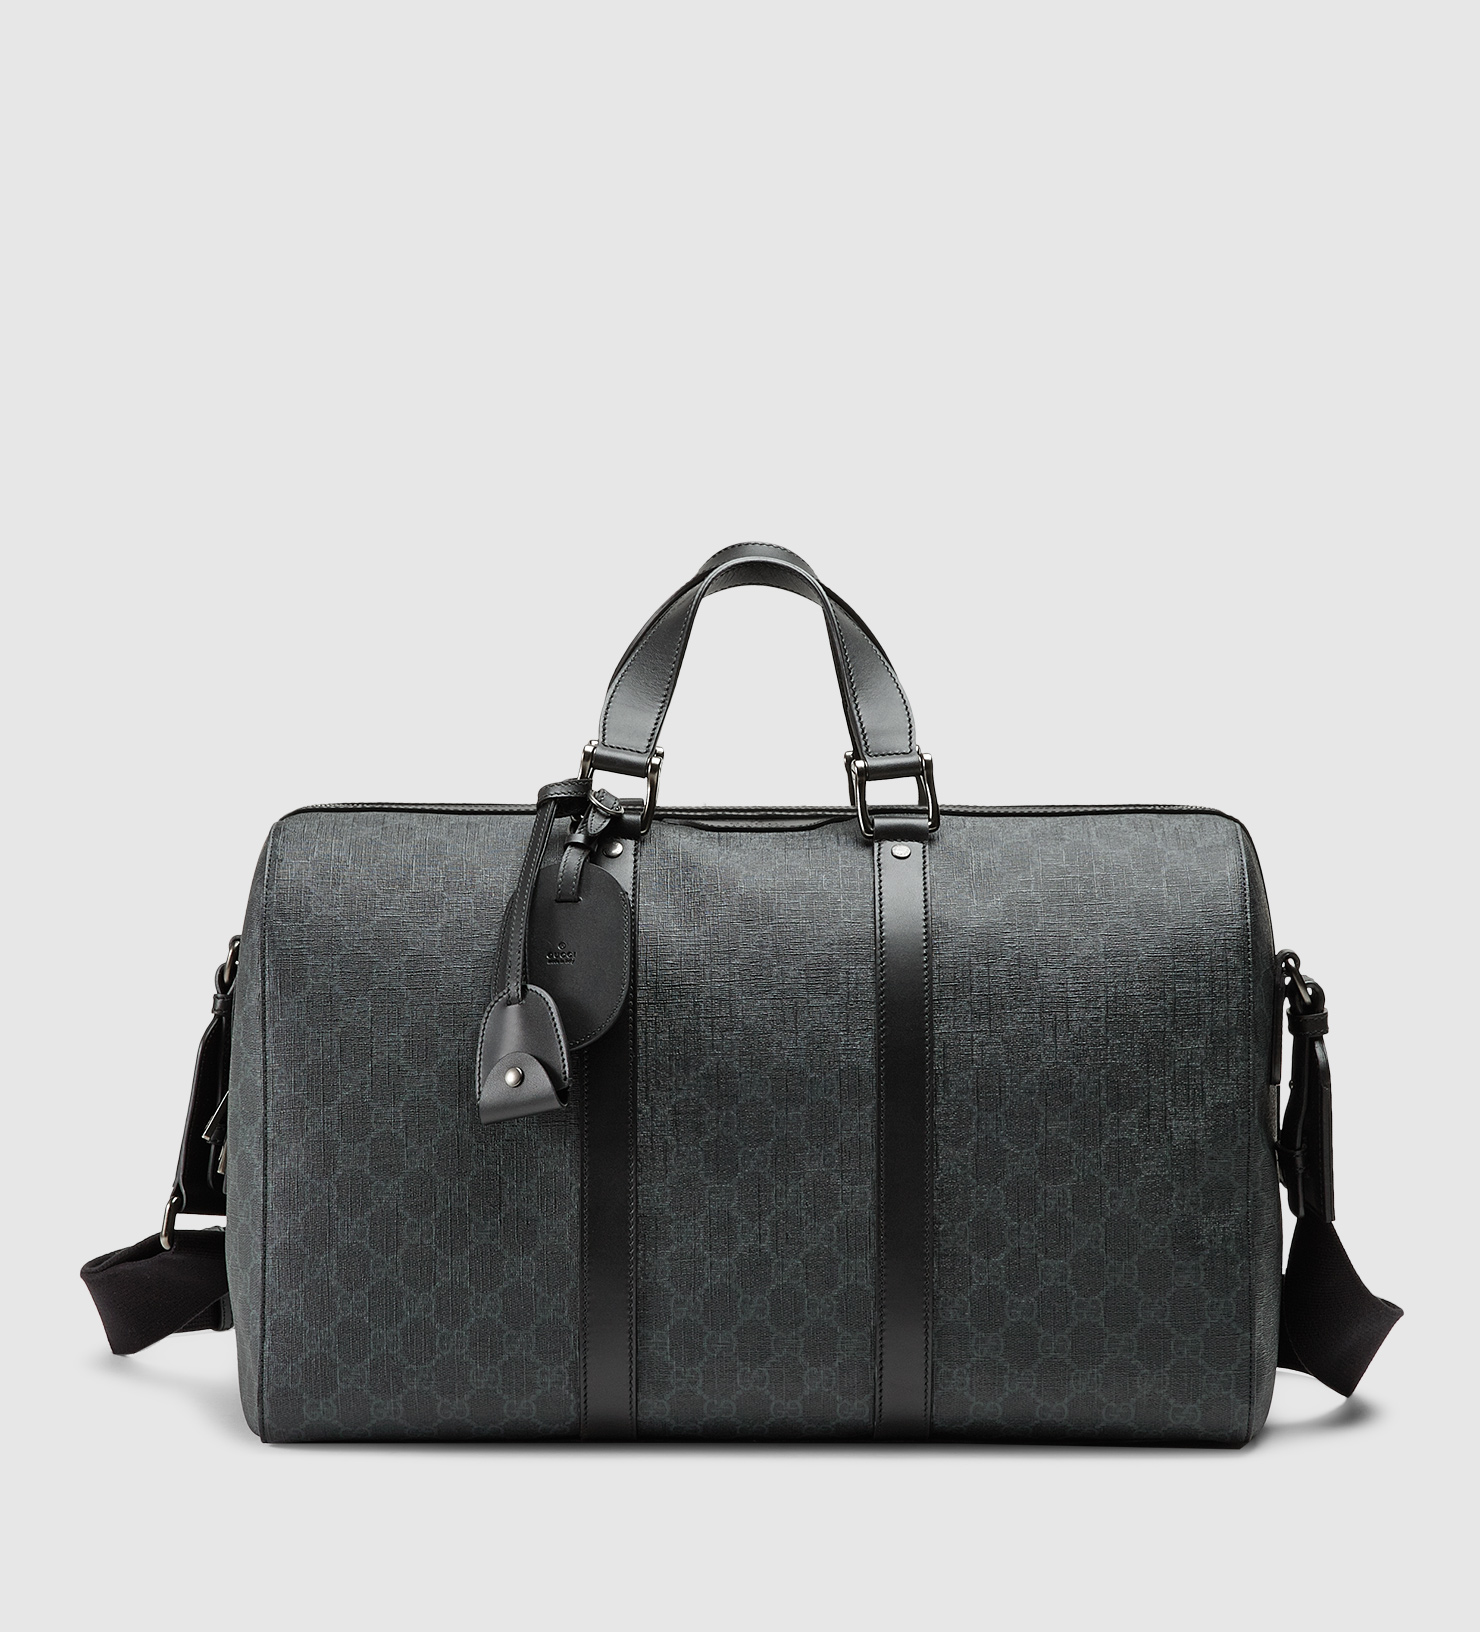 ca27c3e77c9083 Gucci Supreme Canvas Duffle Bag | Stanford Center for Opportunity ...